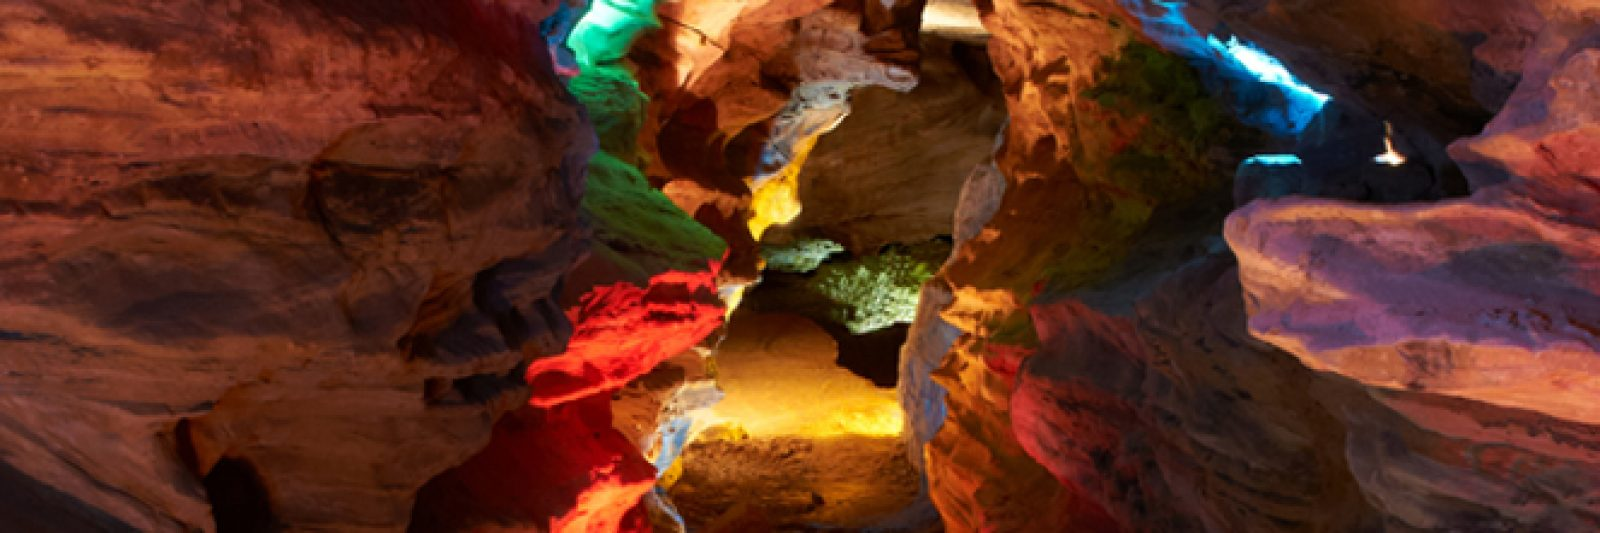 Laurel Caverns